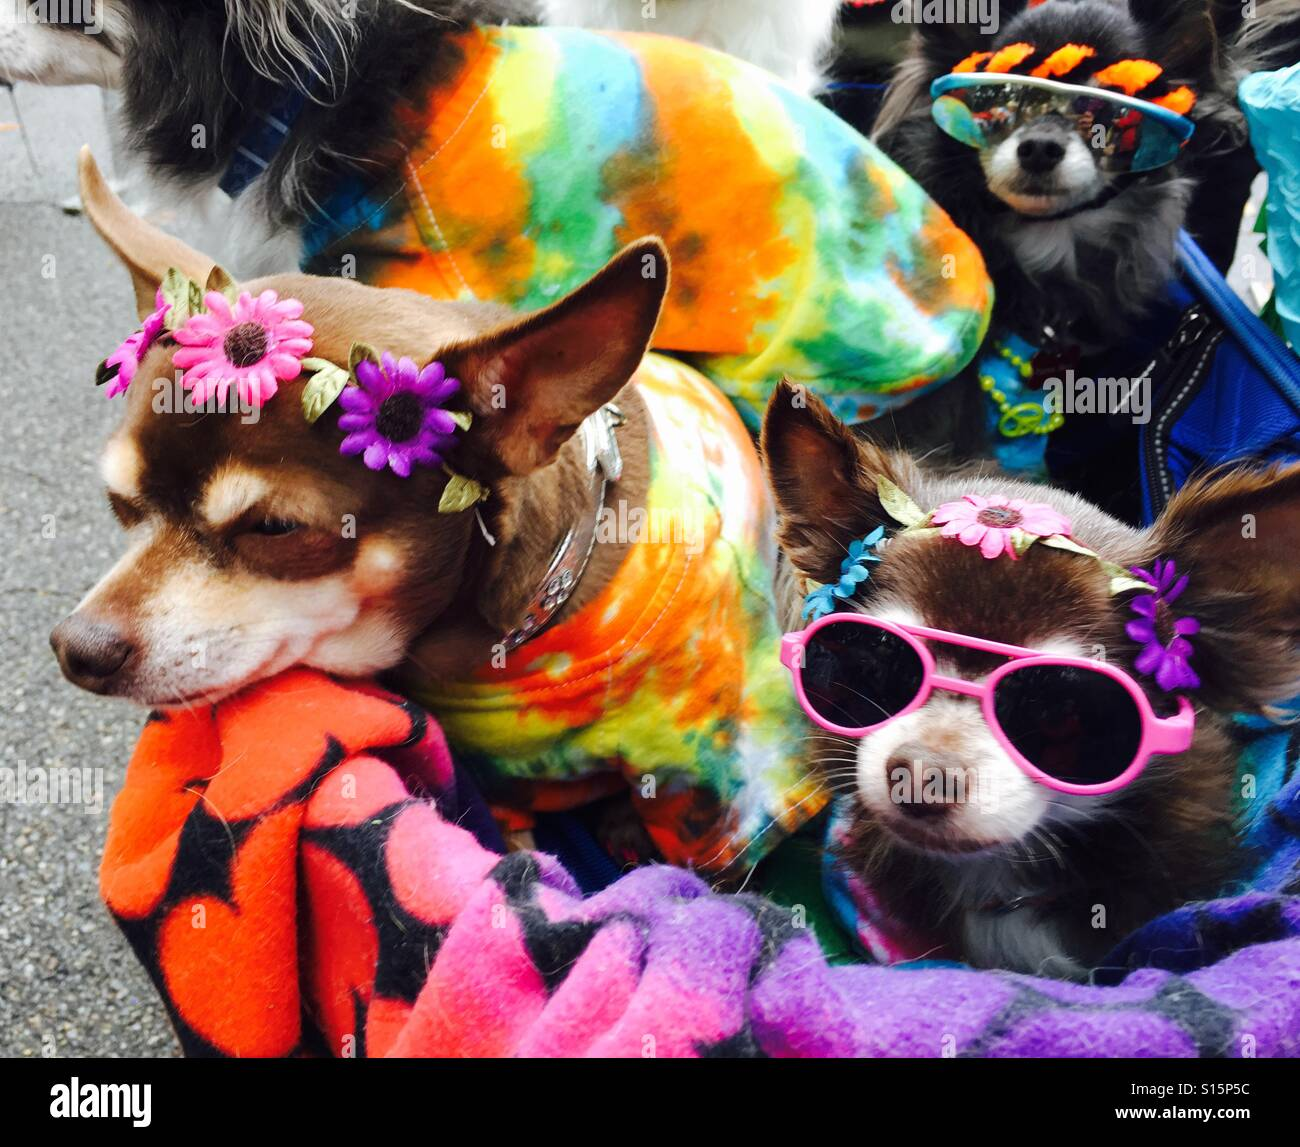 Stroller full of Chihuahuas at the 26th Annual Tompkins Square Park-Halloween Dog Parade in NYC East Village - Stock Image